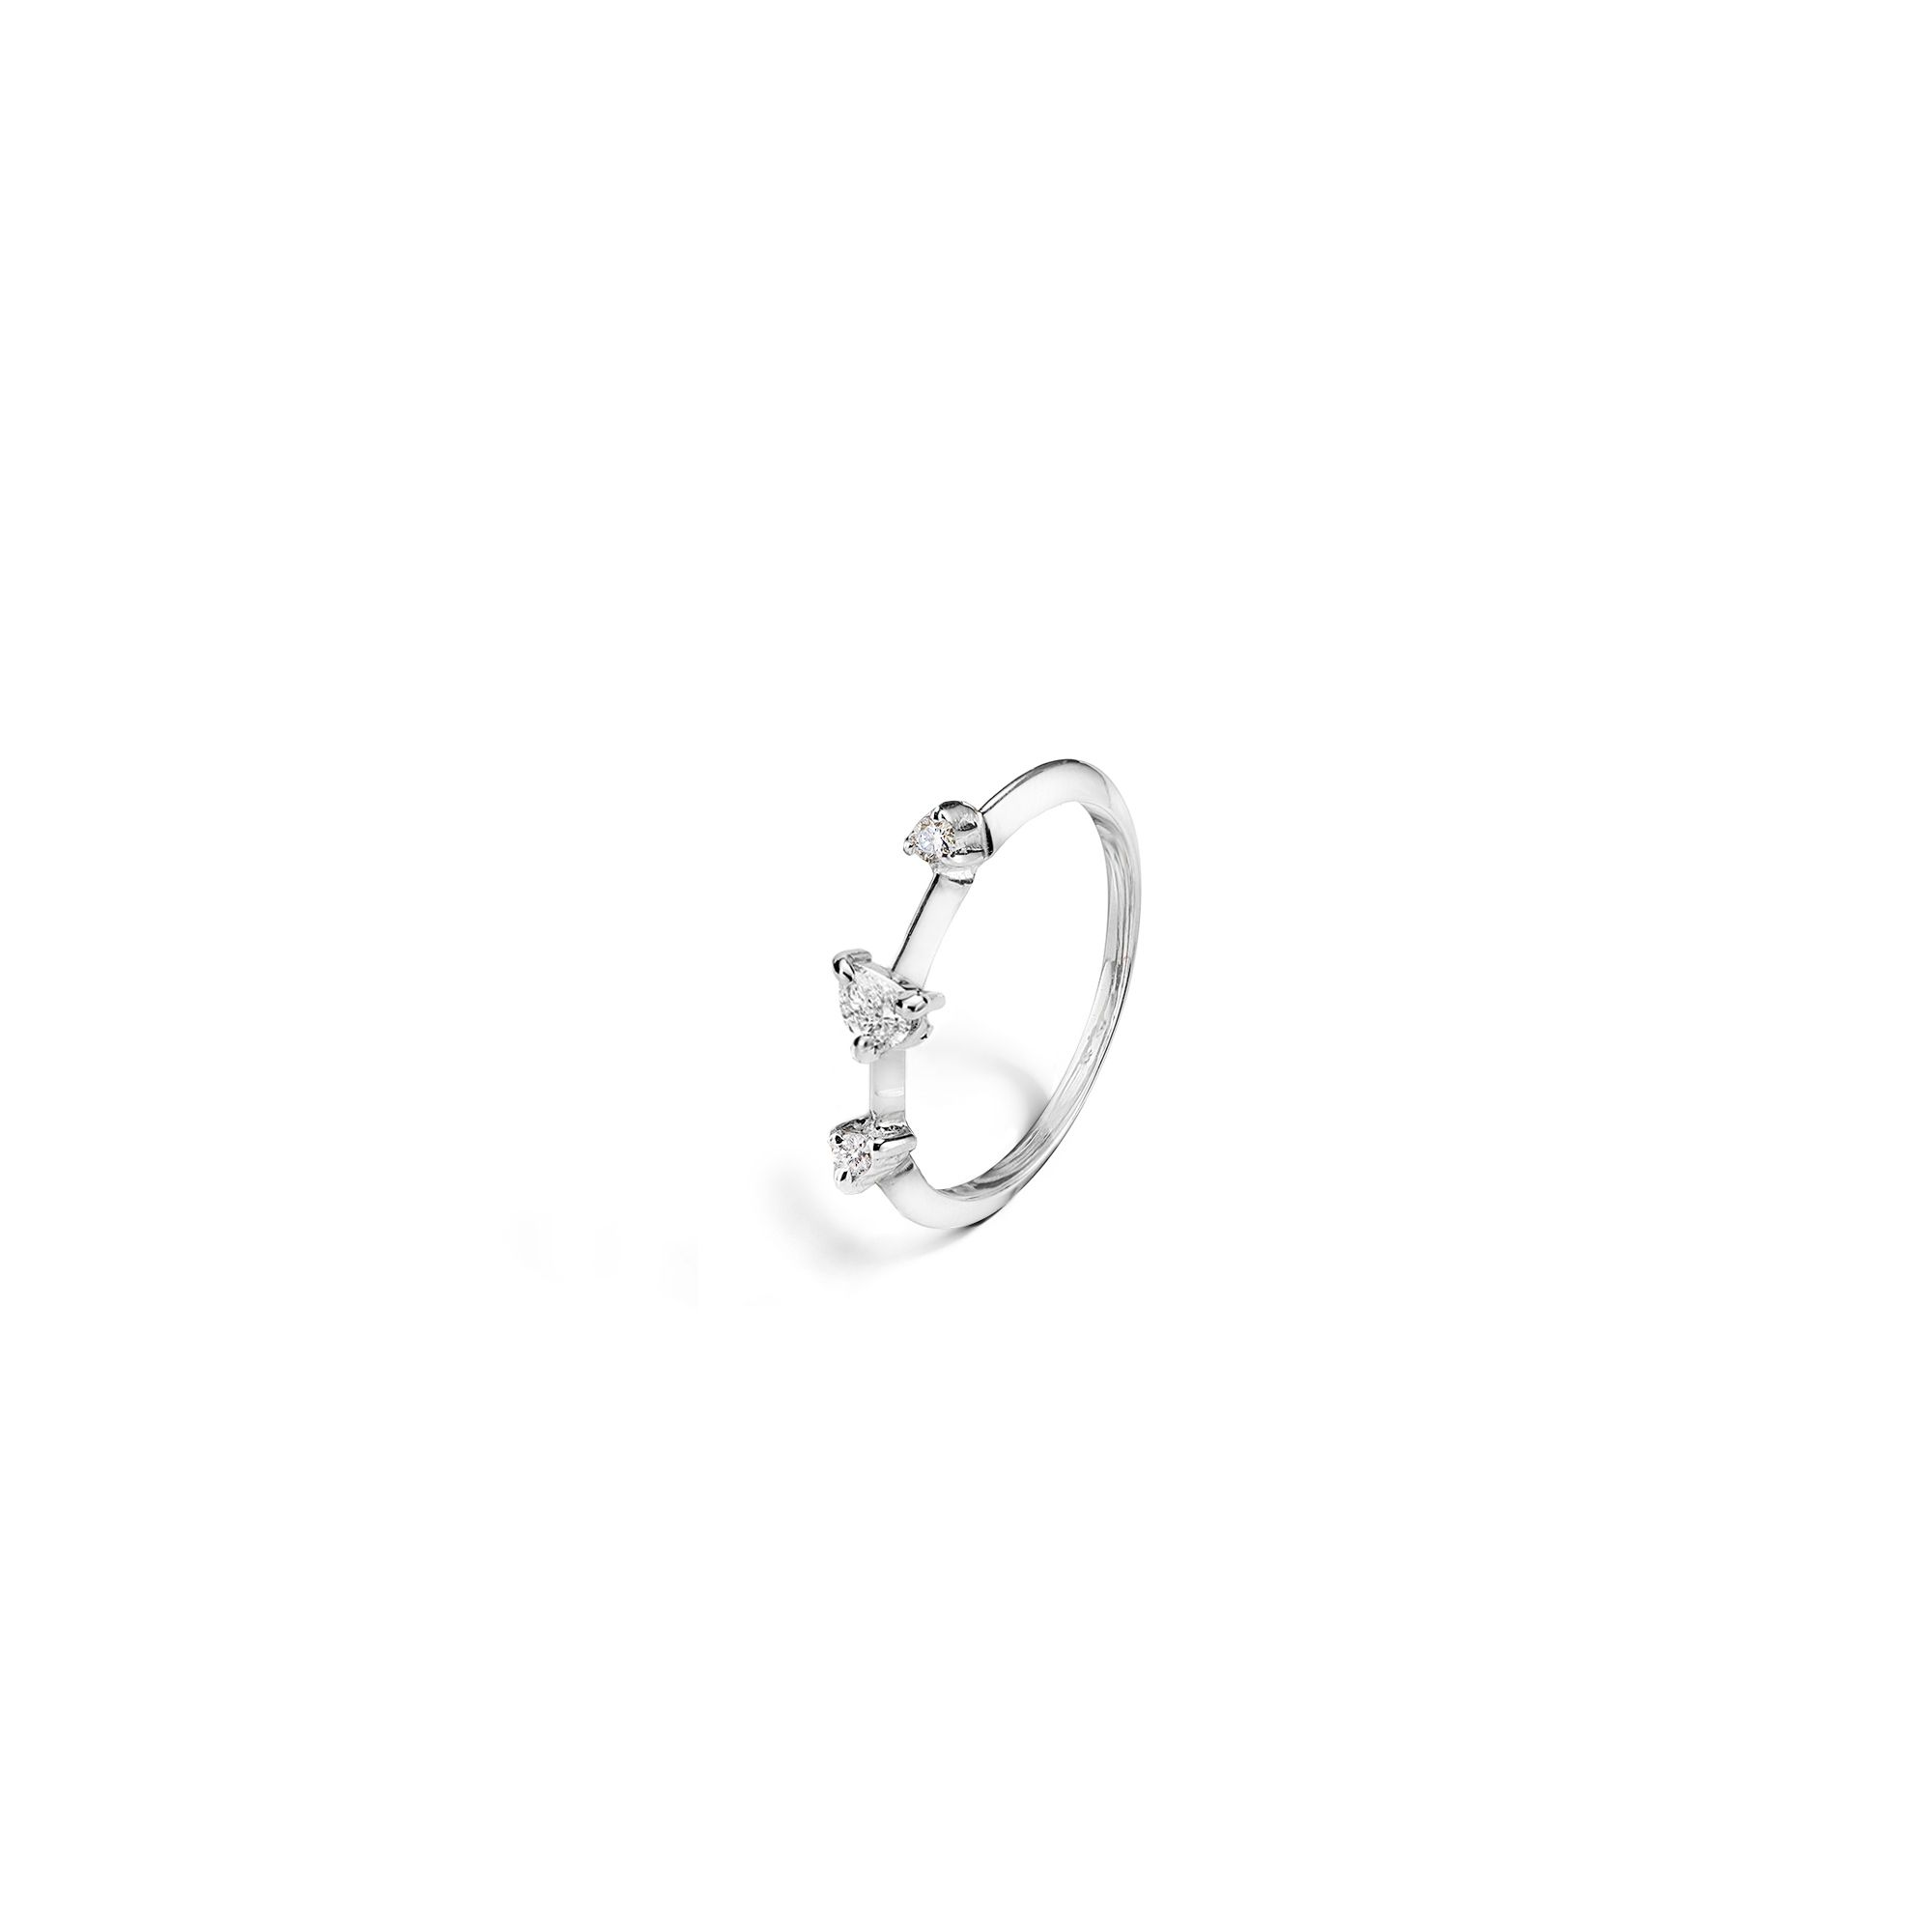 White gold 'Balance' ring with drop cut diamond Gold ring with diamonds